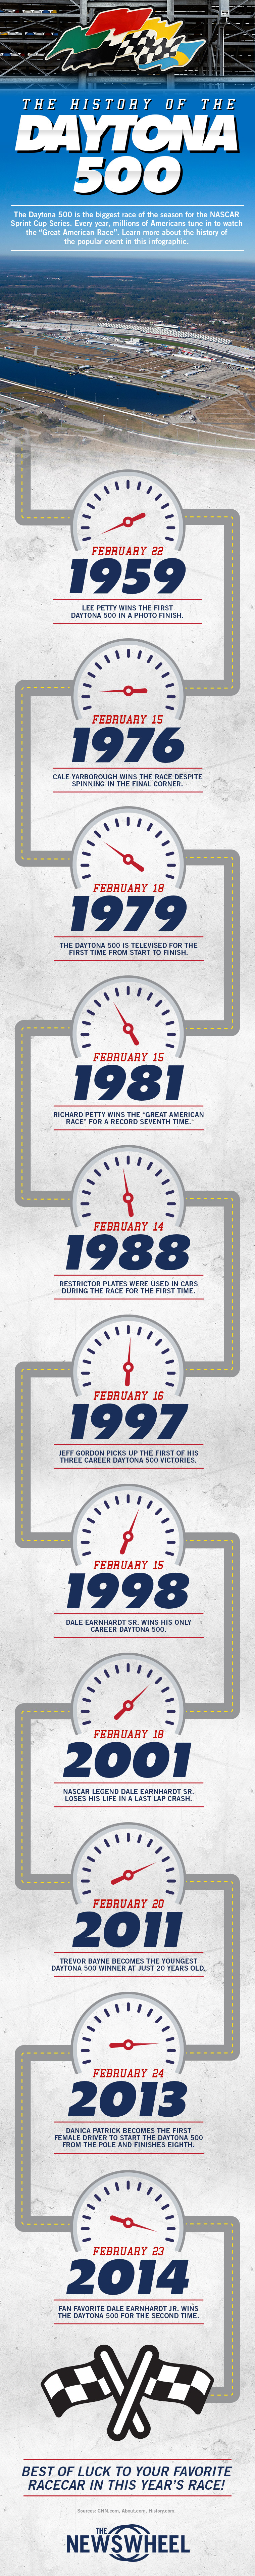 The history of NASCAR's Daytona 500 explained via an infographic